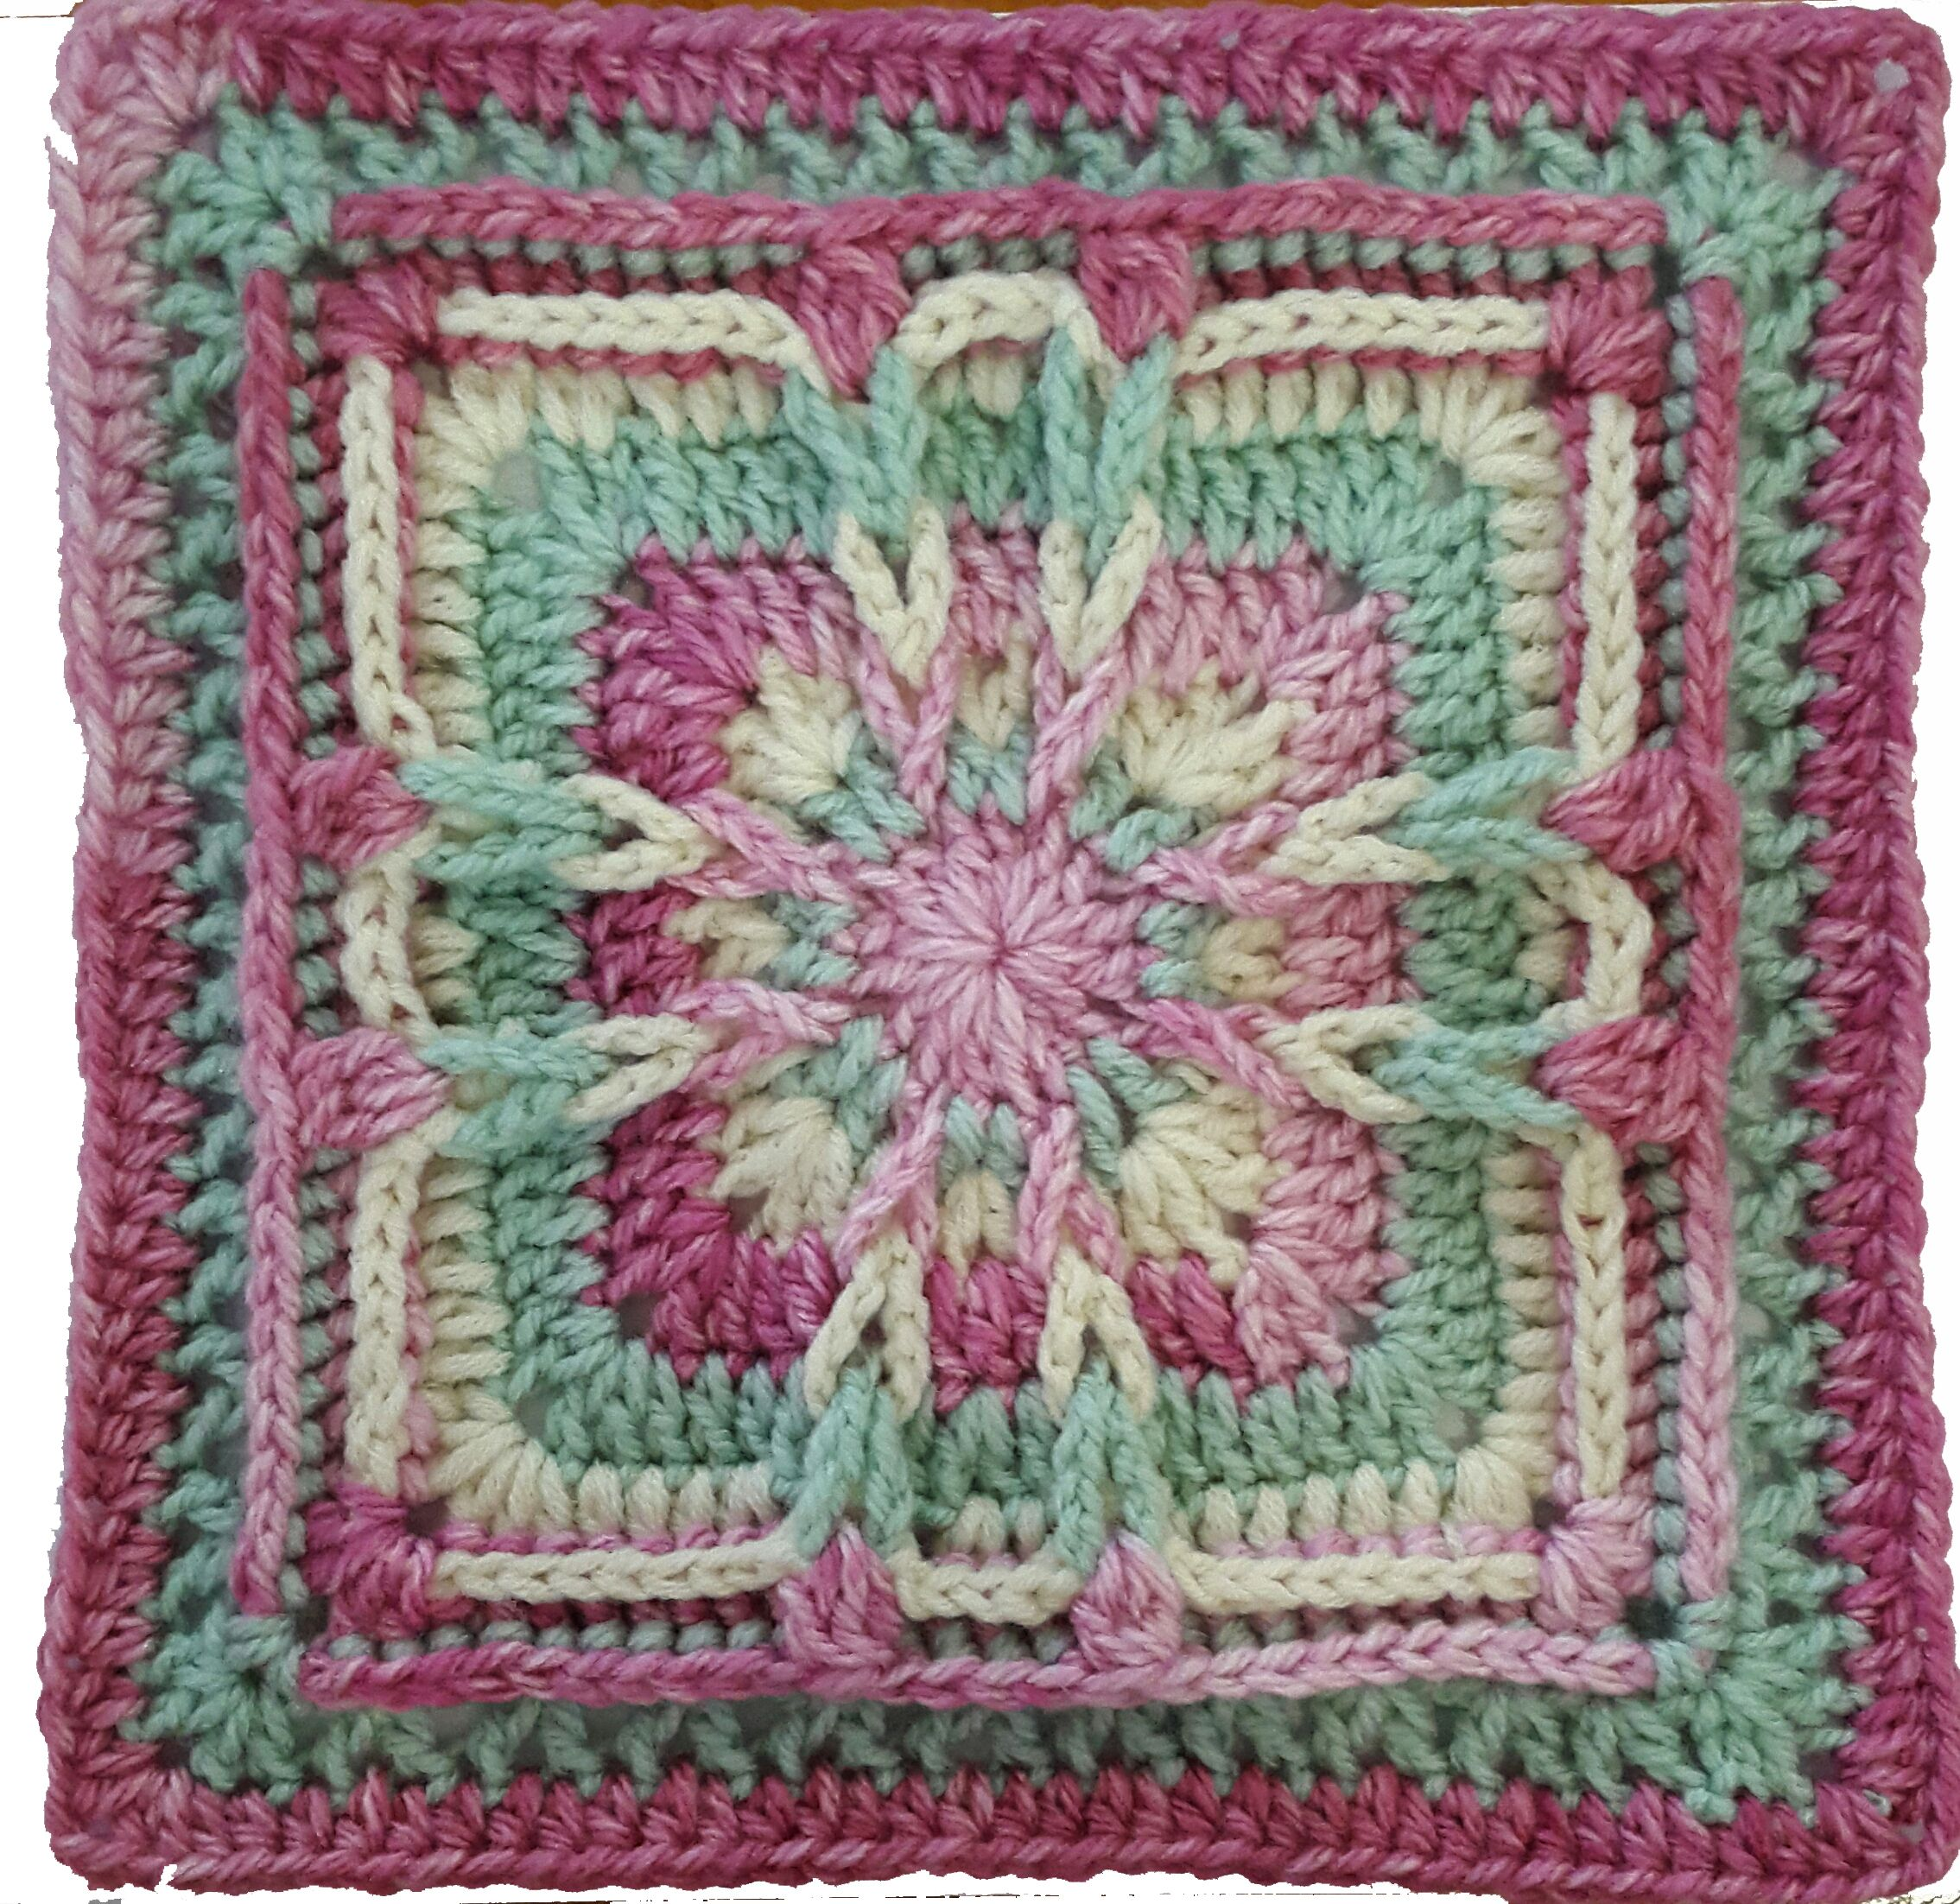 BRONWYN SPICE designed for Square A Week | Granny Squares ...